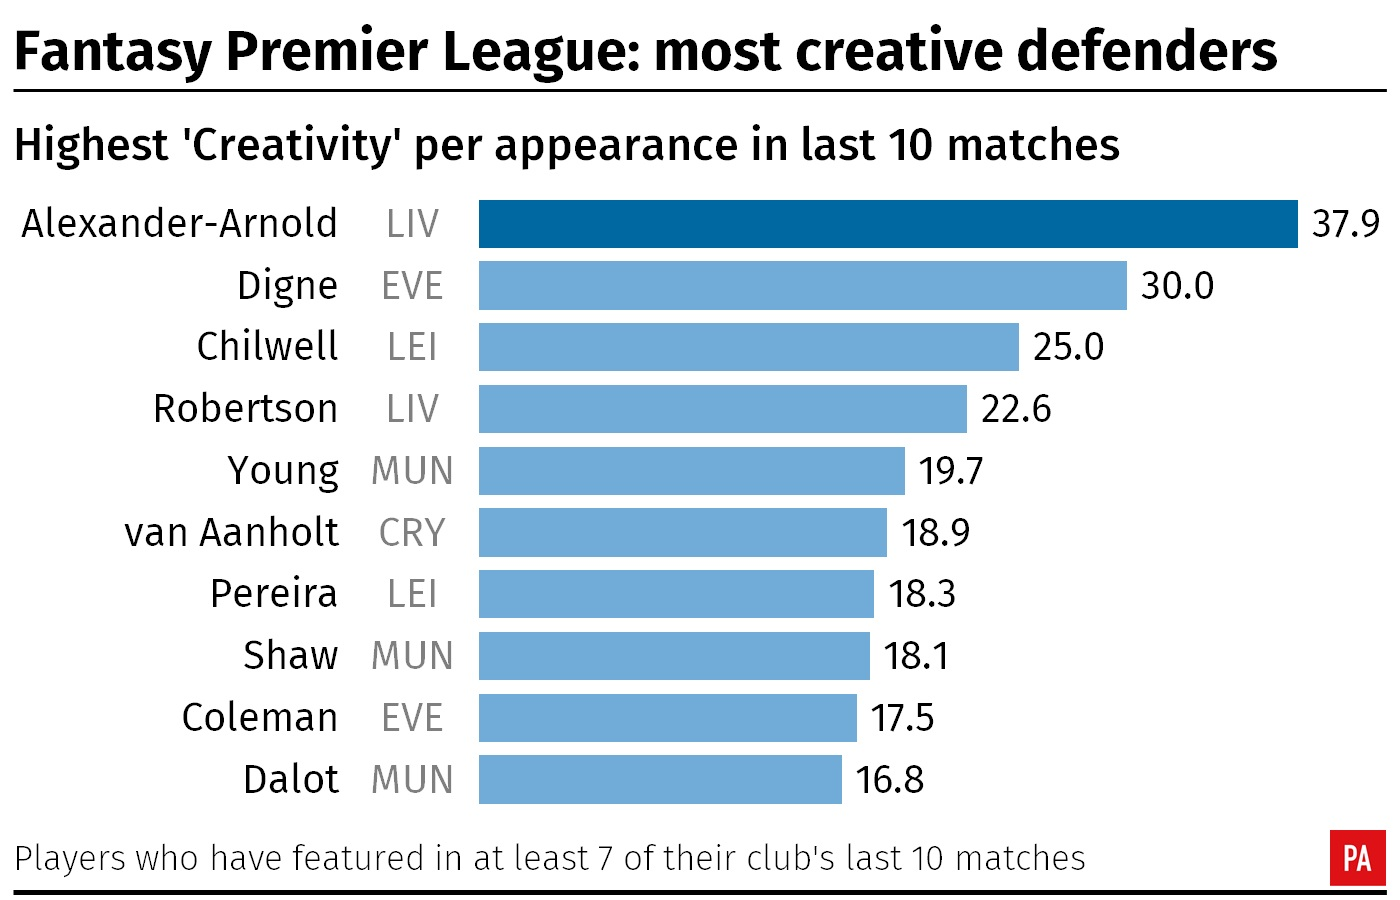 A table showing the most creative defenders over the past 10 Premier League games according to the Fantasy Premier League's Creativity score